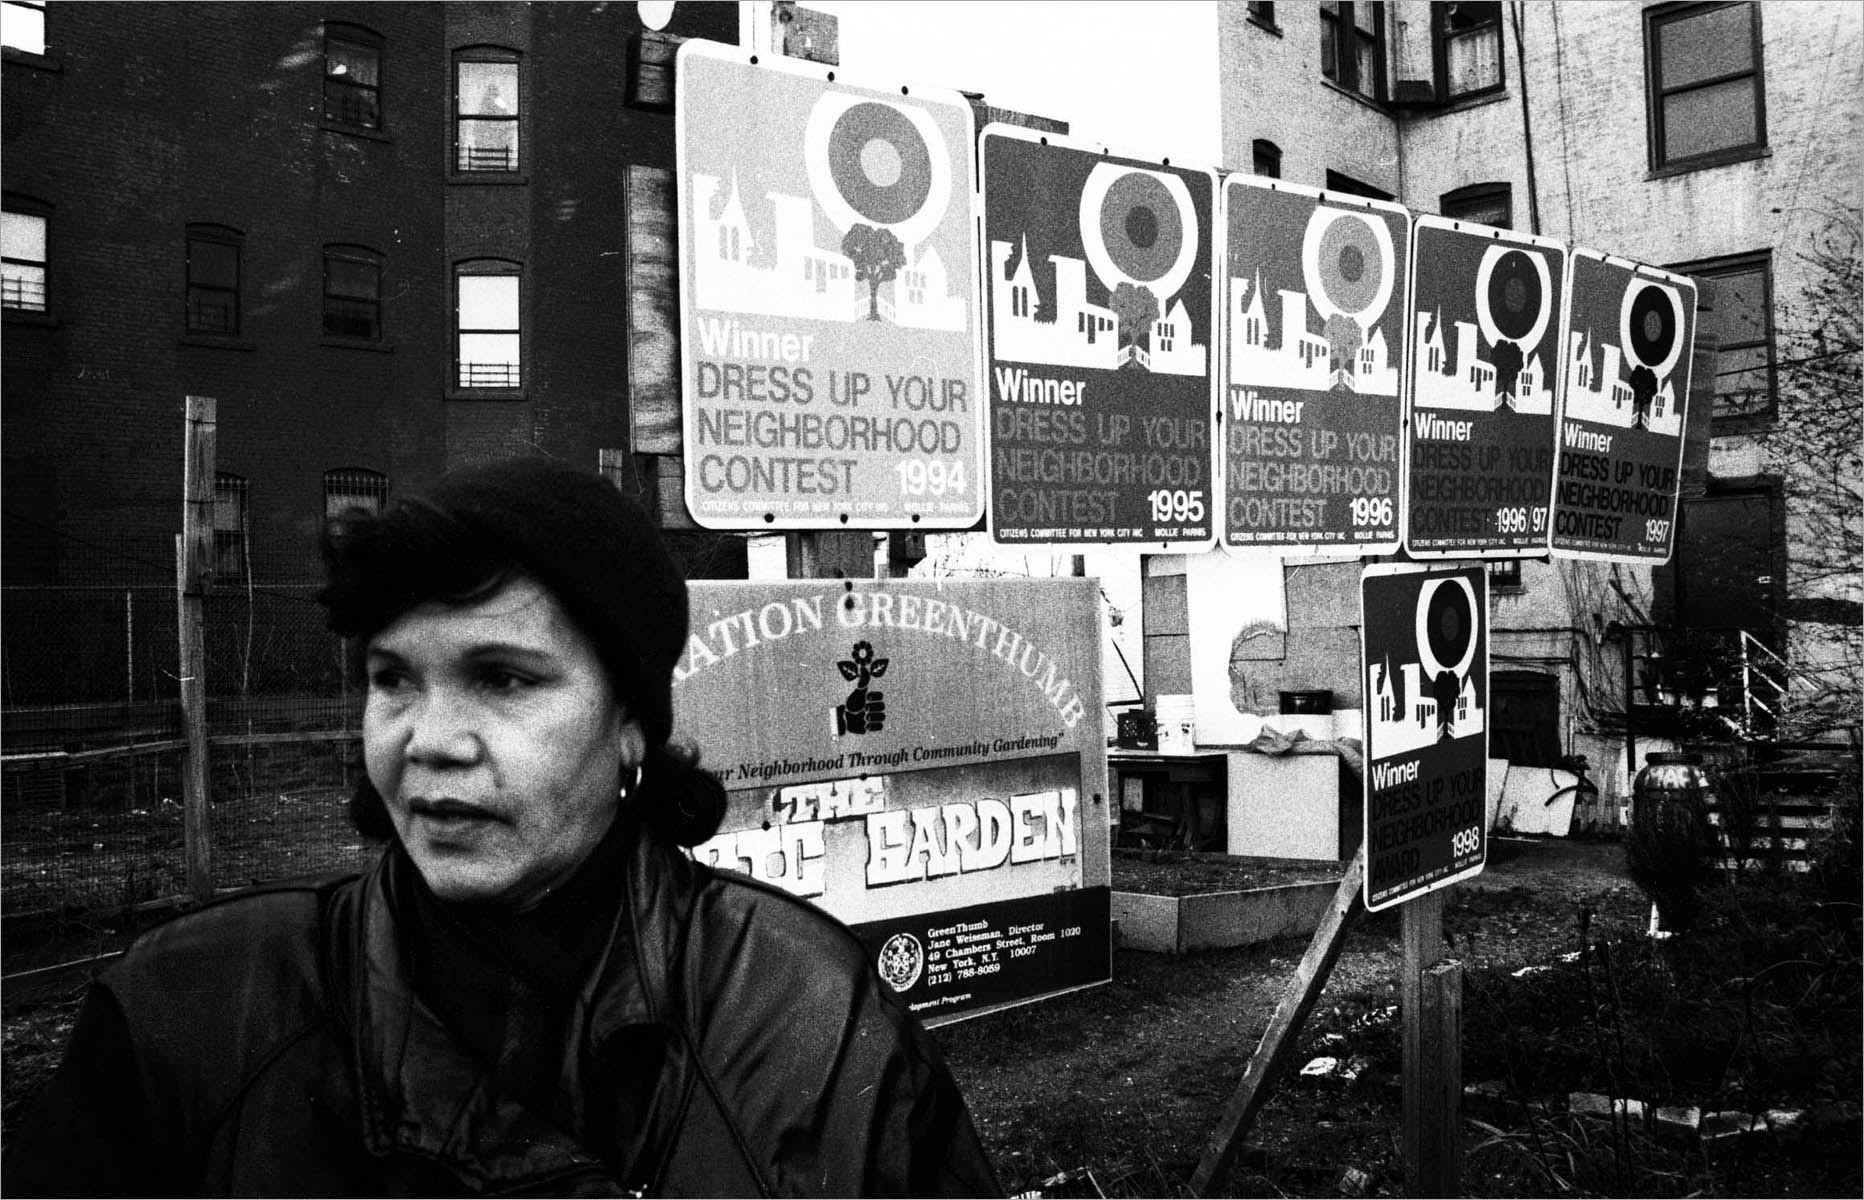 {quote}Community Garden Wars{quote} is a snapshot of a larger body of work which documents New York City's community gardens, and the struggle to keep them from being destroyed. New York City, 1997-2000.Photograph by © Samantha Box1997-2000 © Samantha Box